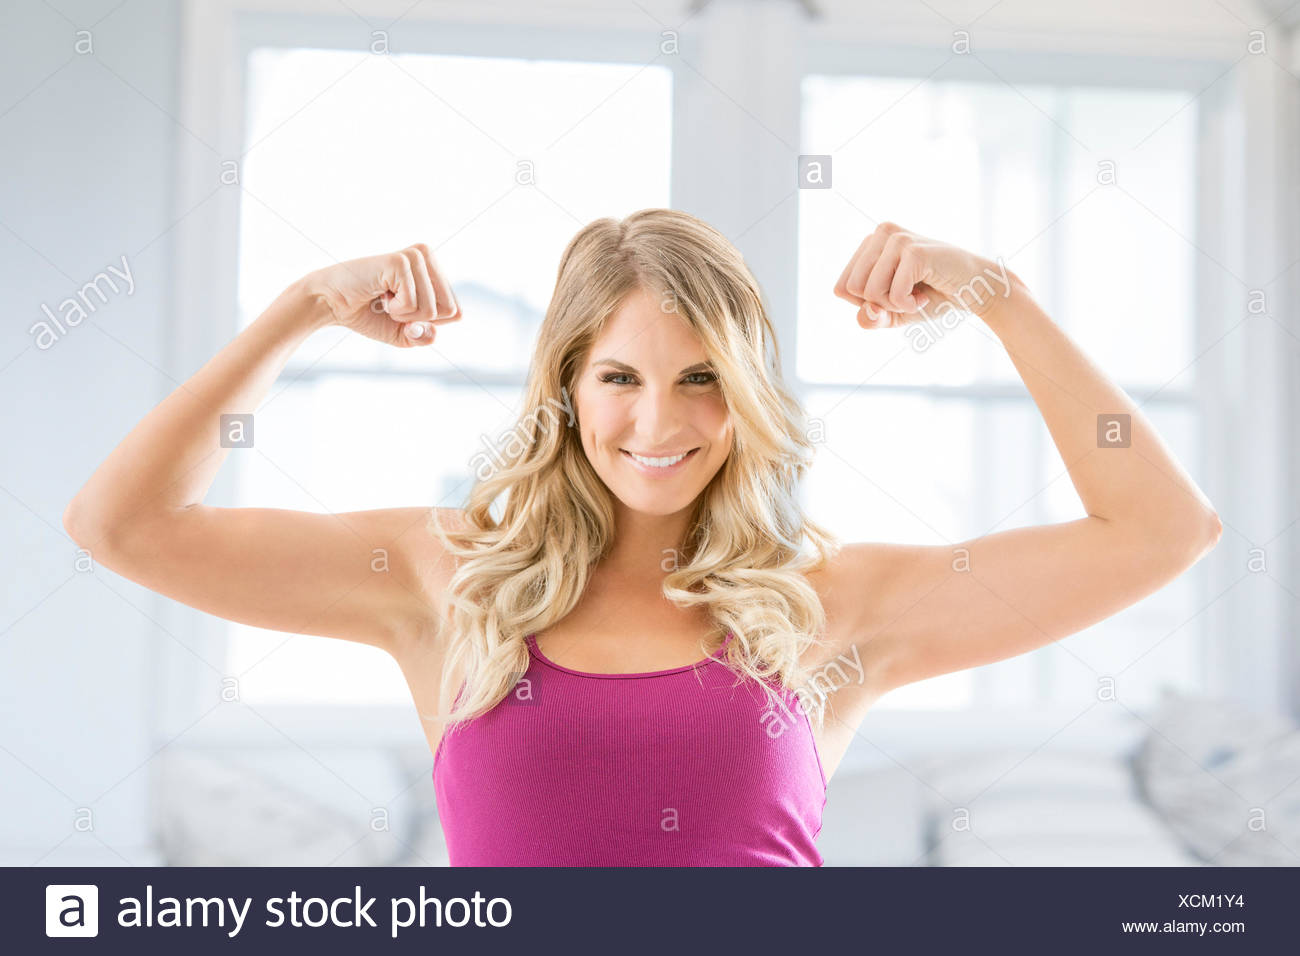 Smiling blonde woman flexing muscles Photo Stock